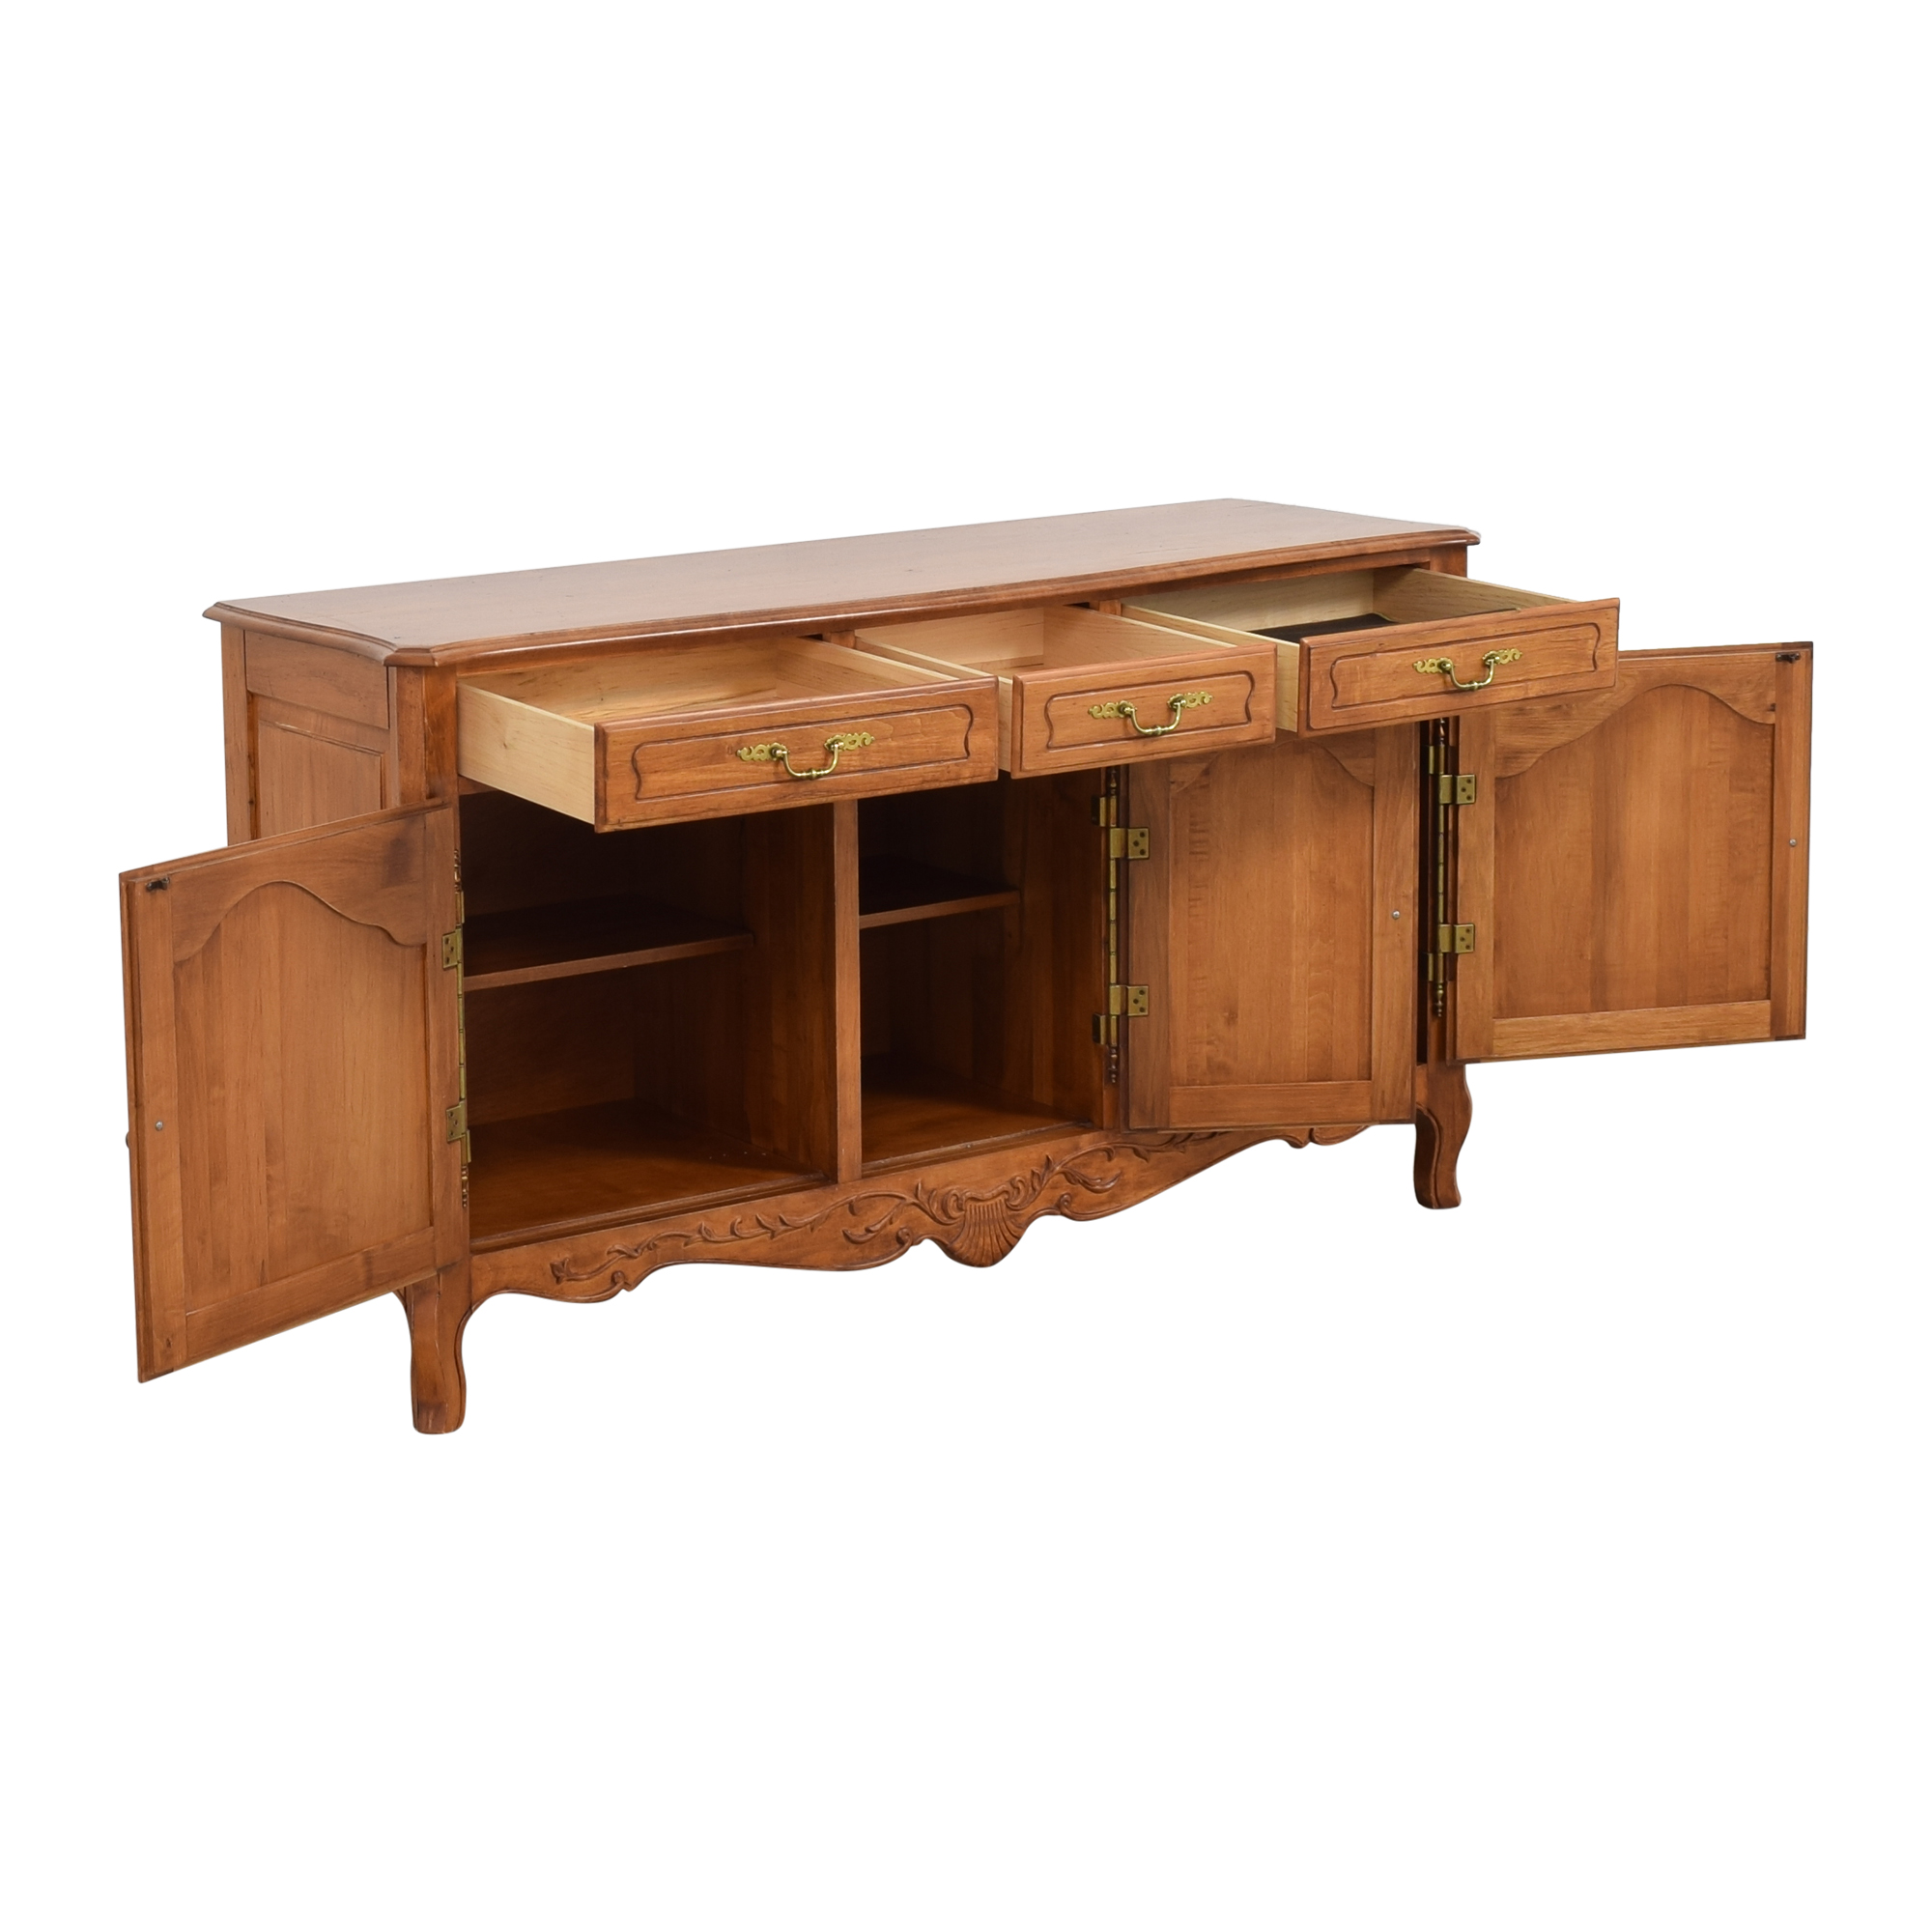 Ethan Allen Ethan Allen Legacy Collection Buffet Cabinets & Sideboards